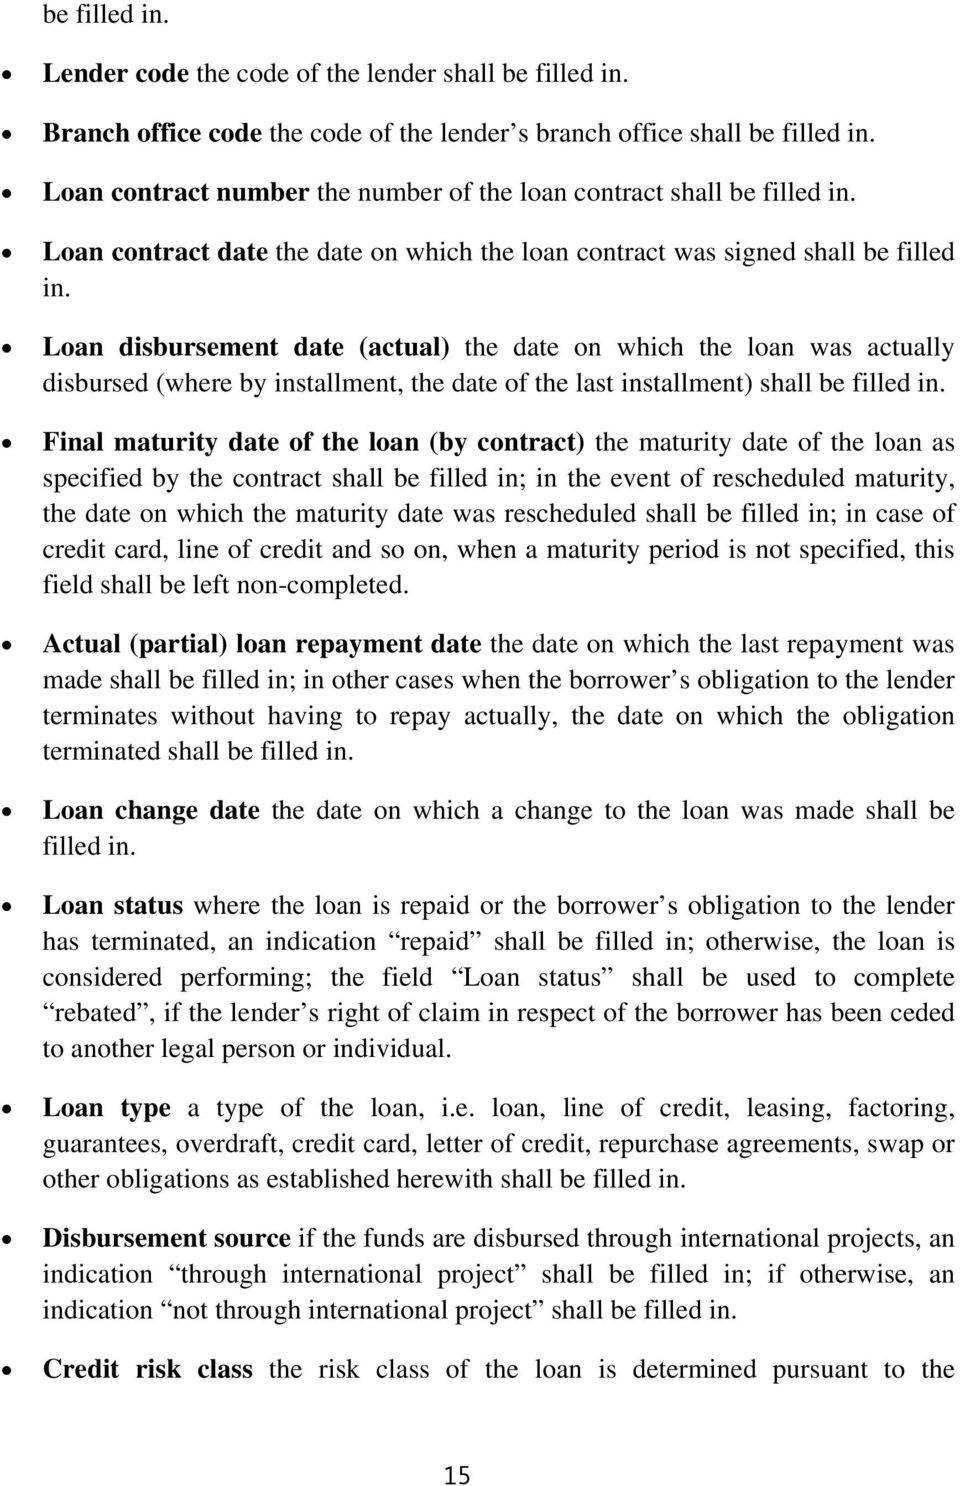 contract was signed shall  Loan disbursement date (actual) the date on which the loan was actually disbursed (where by installment, the date of the last installment) Final maturity date of the loan